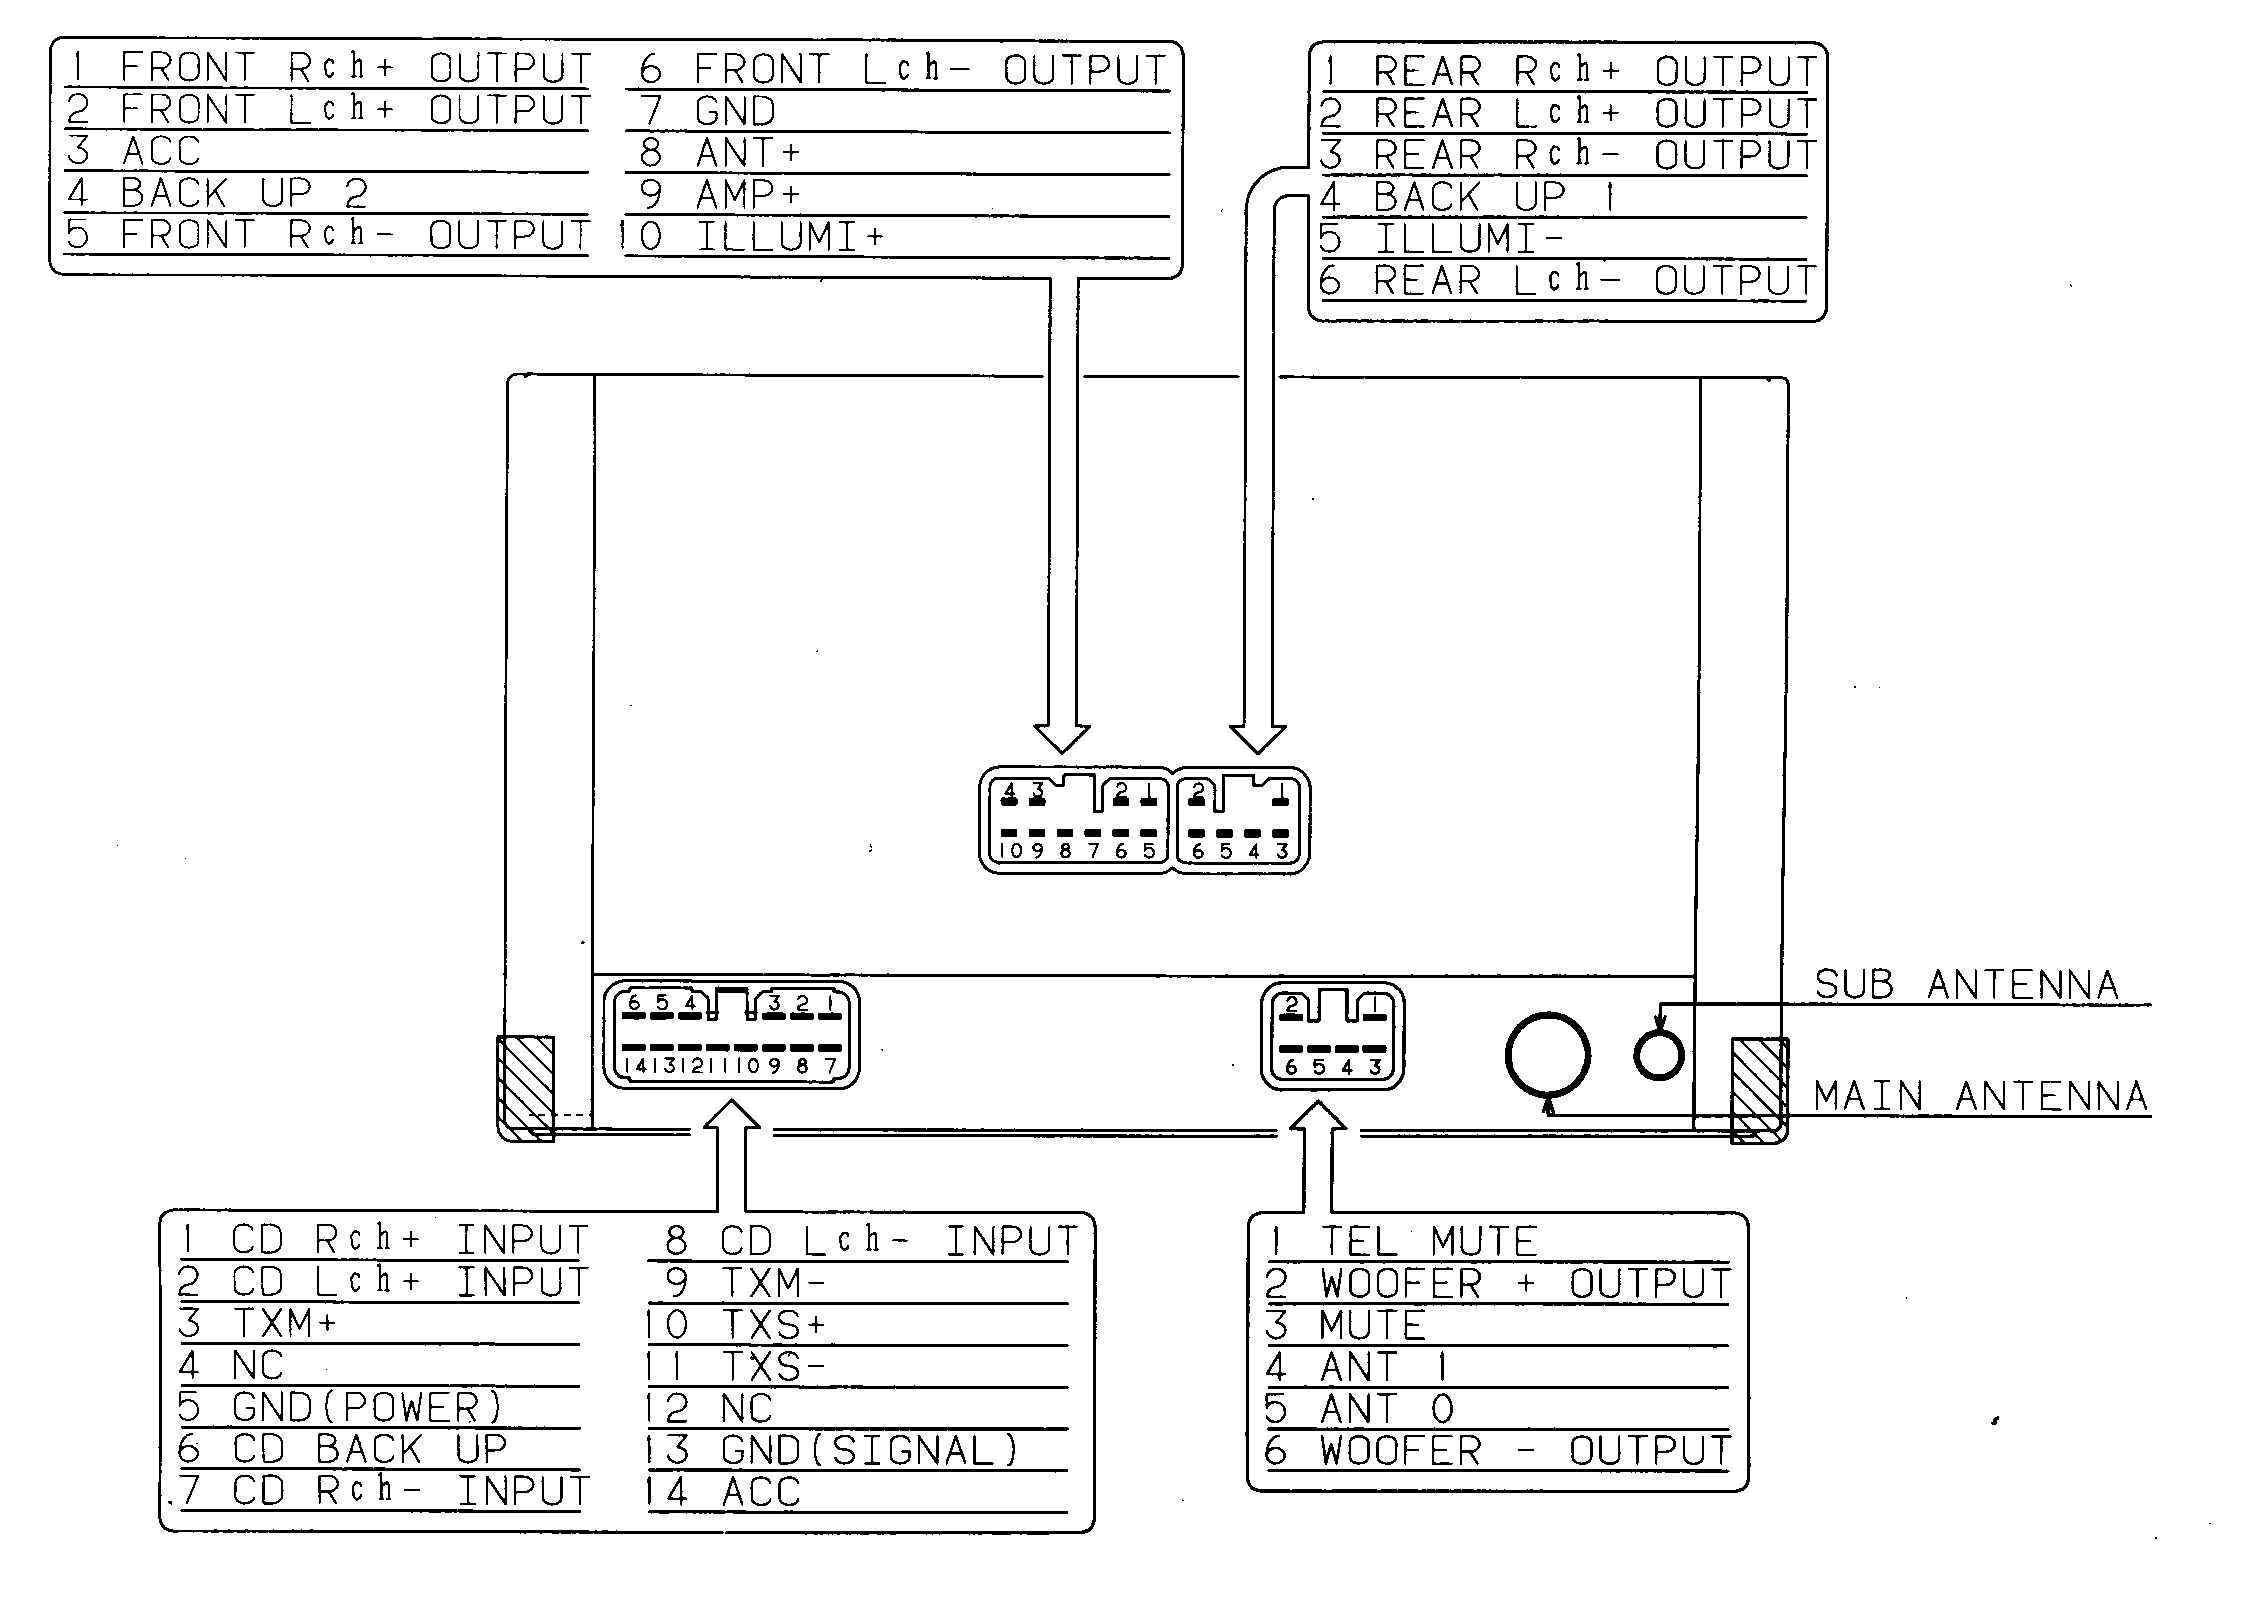 Lexus car stereo wiring diagram harness pinout connector wire 1996 jeep grand cherokee car stereo radio wiring diagram wiring 2002 jeep cherokee radio wiring diagram at crackthecode.co